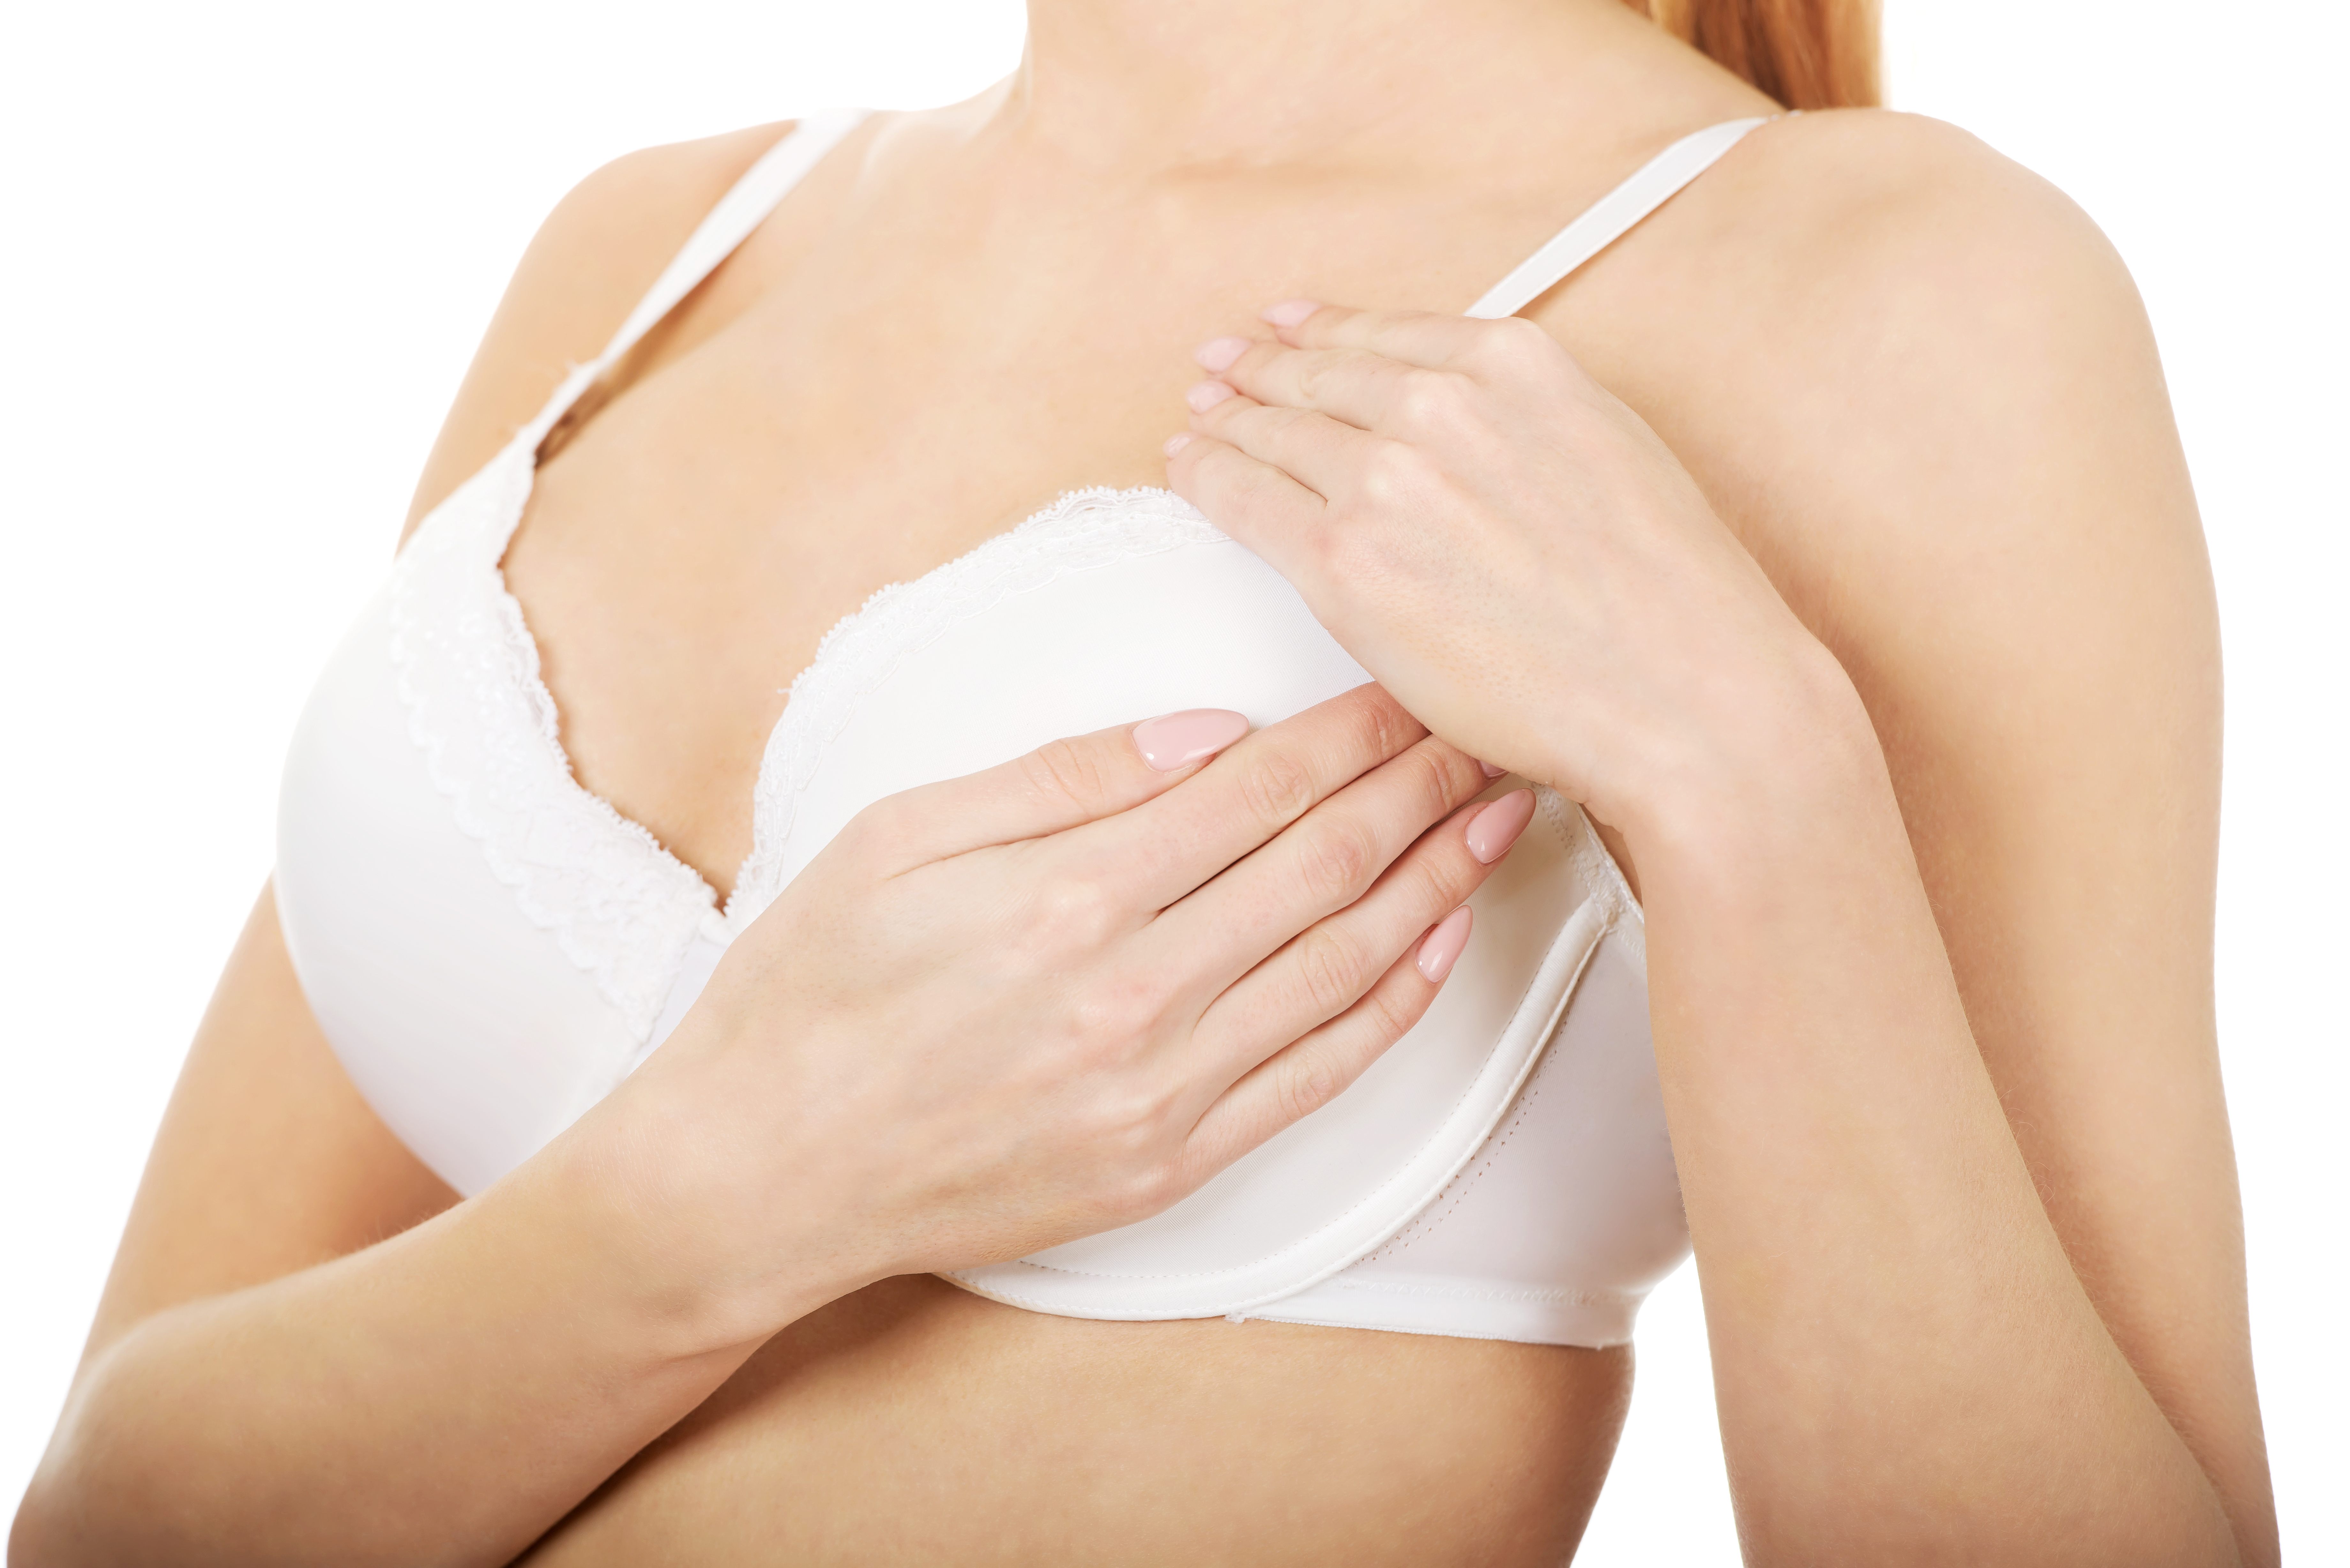 Mastopexy and Augmentation (Breast Lift and Enlargement)